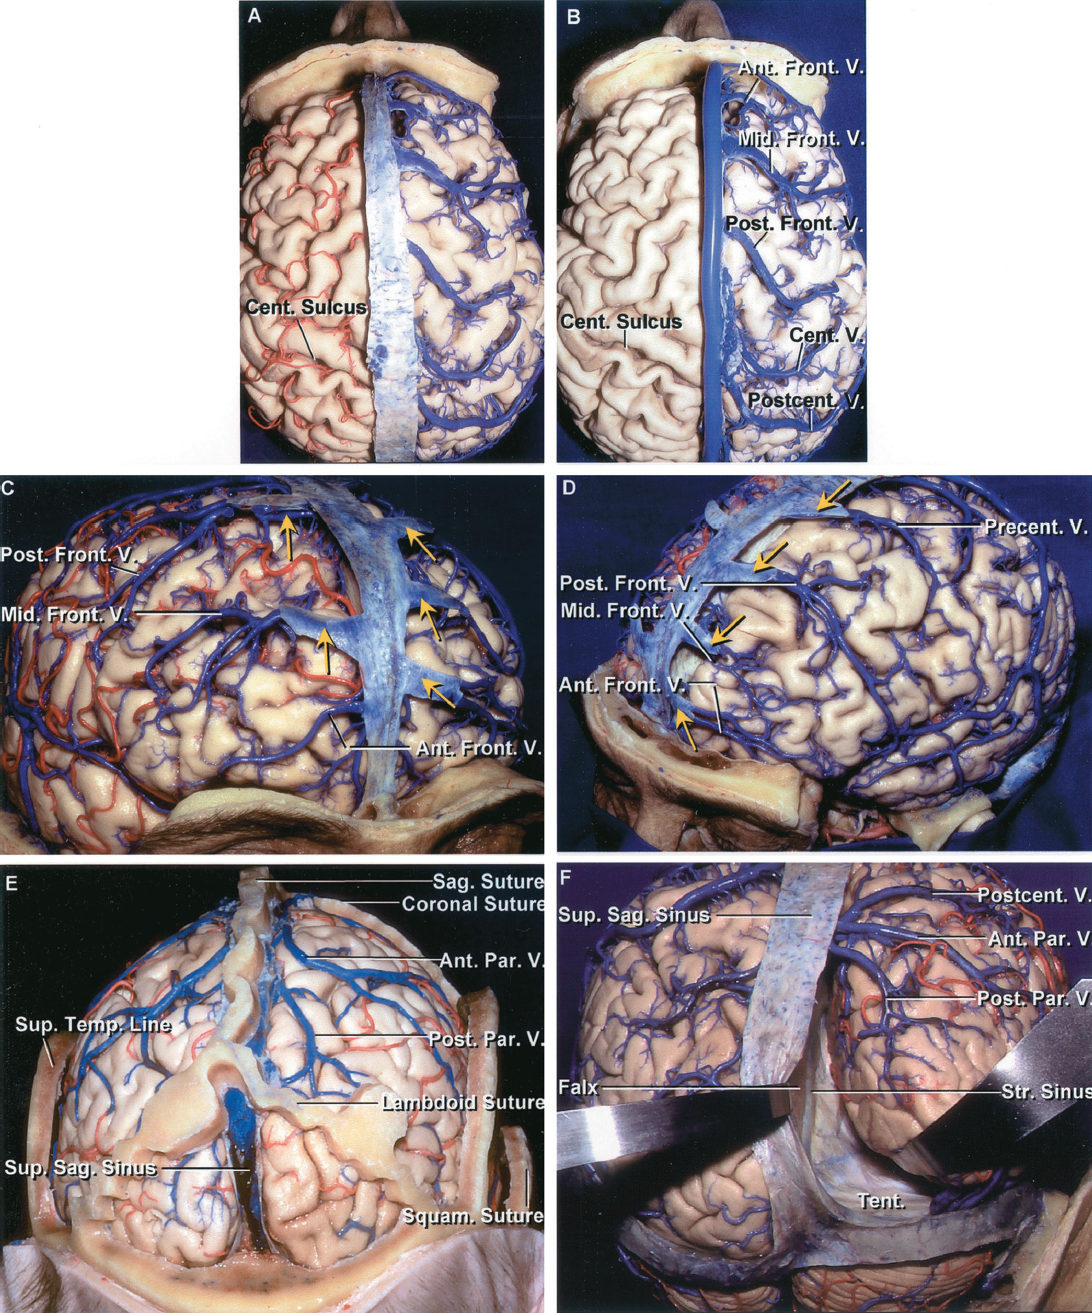 FIGURE 4.2. A, superior view. The dura covering the cerebrum has been removed to expose the cortical veins entering the superior sagittal sinus. The branches of the left anterior and middle cerebral arteries have been preserved. The veins entering the most anterior part of the sagittal sinus are directed slightly posteriorly. Those from the midportion of the frontal lobe enter the sagittal sinus at a right angle and, proceeding posteriorly, the veins entering the sinus are progressively angulated further forward. The central sulcus reaches the superior hemispheric border. B, the arteries on the left side have been removed. The veins entering the posterior part of the sagittal sinus are directed forward. Anterior, middle, and posterior frontal, and central and postcentral veins ascend to the superior sagittal sinus. The posterior frontal vein drains the area normally drained by precentral and posterior frontal veins. C, right anterolateral view. The right middle and posterior frontal veins join sinuses in the dura that empty medially into the superior sagittal sinus. The right anterior frontal vein empties directly into the superior sagittal sinus. Yellow arrows are on two dural sinuses on the right and three on the left side. D, left anterolateral view. The left anterior, middle, and posterior frontal and precentral veins do not pass directly to the superior sagittal sinus, but empty into dural sinuses that cross the upper border of the frontal lobe to reach the superior sagittal sinus. Yellow arrows are on four left dural sinuses. E, posterior view. The veins on the occipital lobe are directed forward so that the area below the lambdoid suture is often completely devoid of bridging veins to the superior sagittal sinus. This often allows the occipital lobe to be retracted away from the sagittal sinus without sacrificing any bridging veins. There is an intrasutural bone in each lambdoid suture. F, another specimen. The lambdoid suture has been removed to show the absence of bridging veins entering the posterior part of the superior sagittal sinus. Right postcentral and anterior and posterior parietal veins empty into the superior sagittal sinus. The right occipital lobe has been retracted to expose the tentorium, falx, and straight sinus. There are no bridging veins between the occipital pole and the superior sagittal or straight sinus. Ant., anterior; Cent., central; Front., frontal; Mid., middle; Par., parietal; Post., posterior; Postcent., postcentral; Precent., precentral; Sag., sagittal; Squam., squamosal; Str., straight; Sup., superior; Temp., temporal; Tent., tentorium; V., vein.